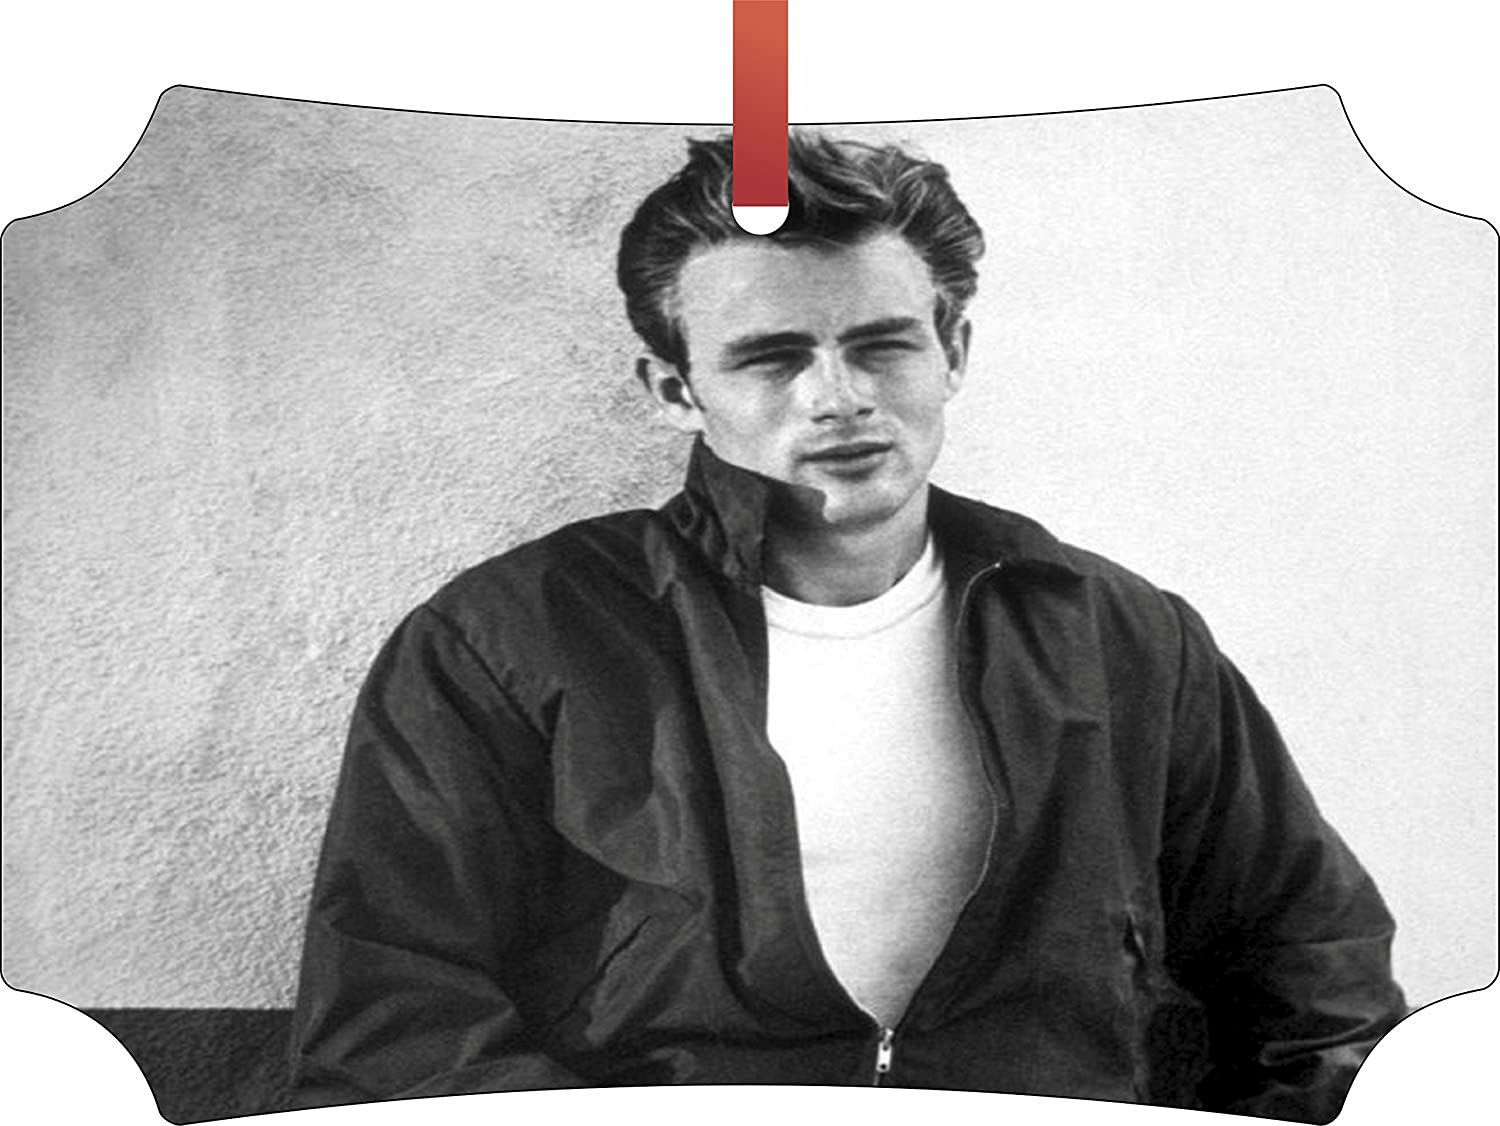 Lea Elliot Inc. James Dean Holiday - S Hanging Max 61% OFF Manufacturer direct delivery Ornament Berlin